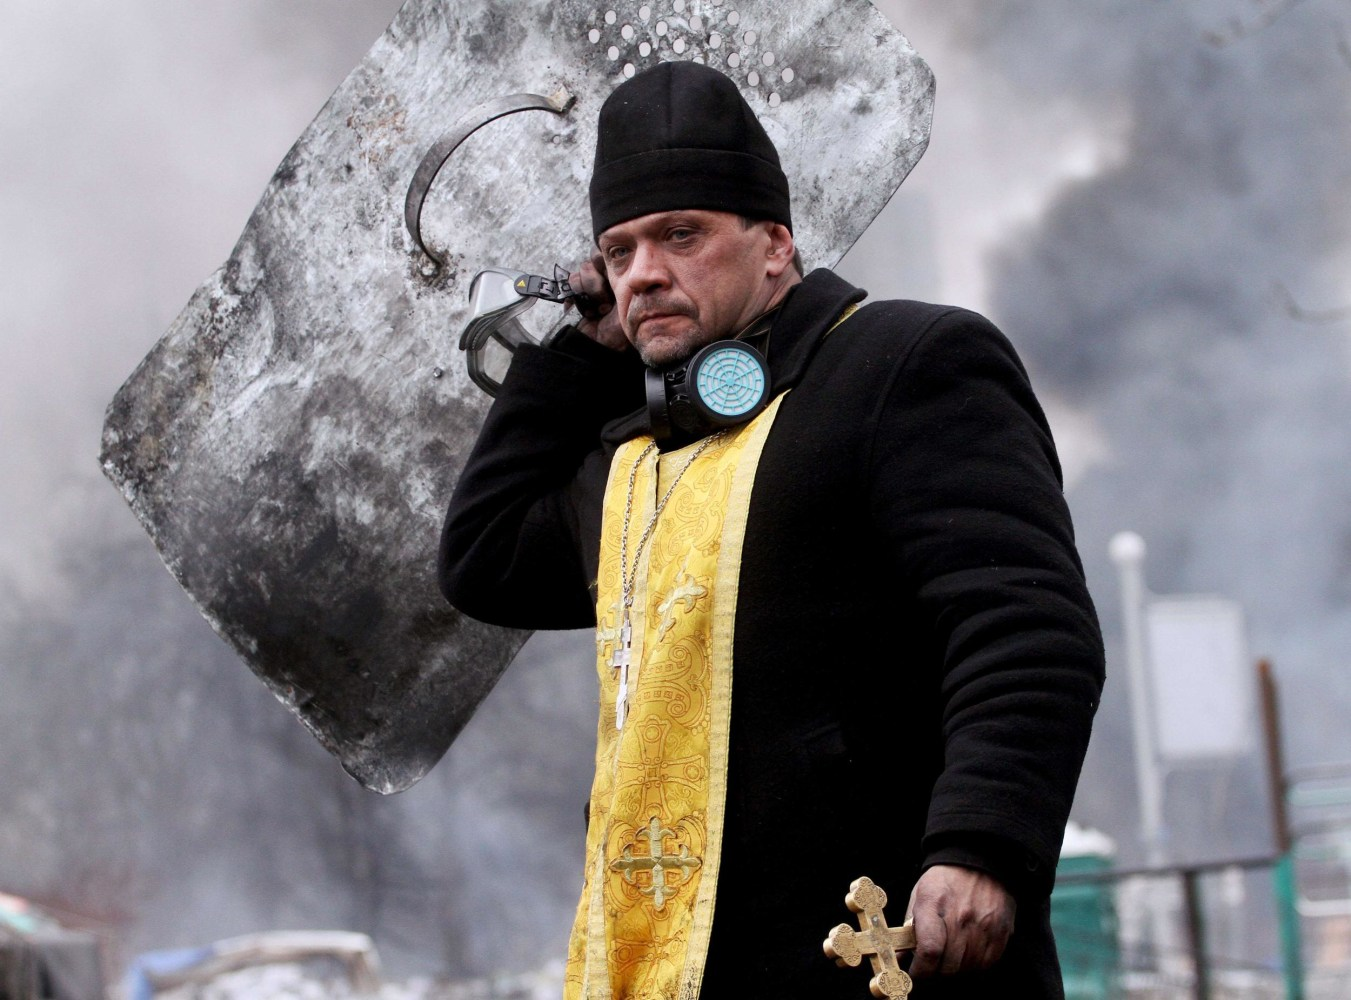 Meanwhile, over in the Ukraine... Pb-140220-priests-da-03_8cd8c21bdcd6aa848513beeed6566450.nbcnews-ux-1360-1000